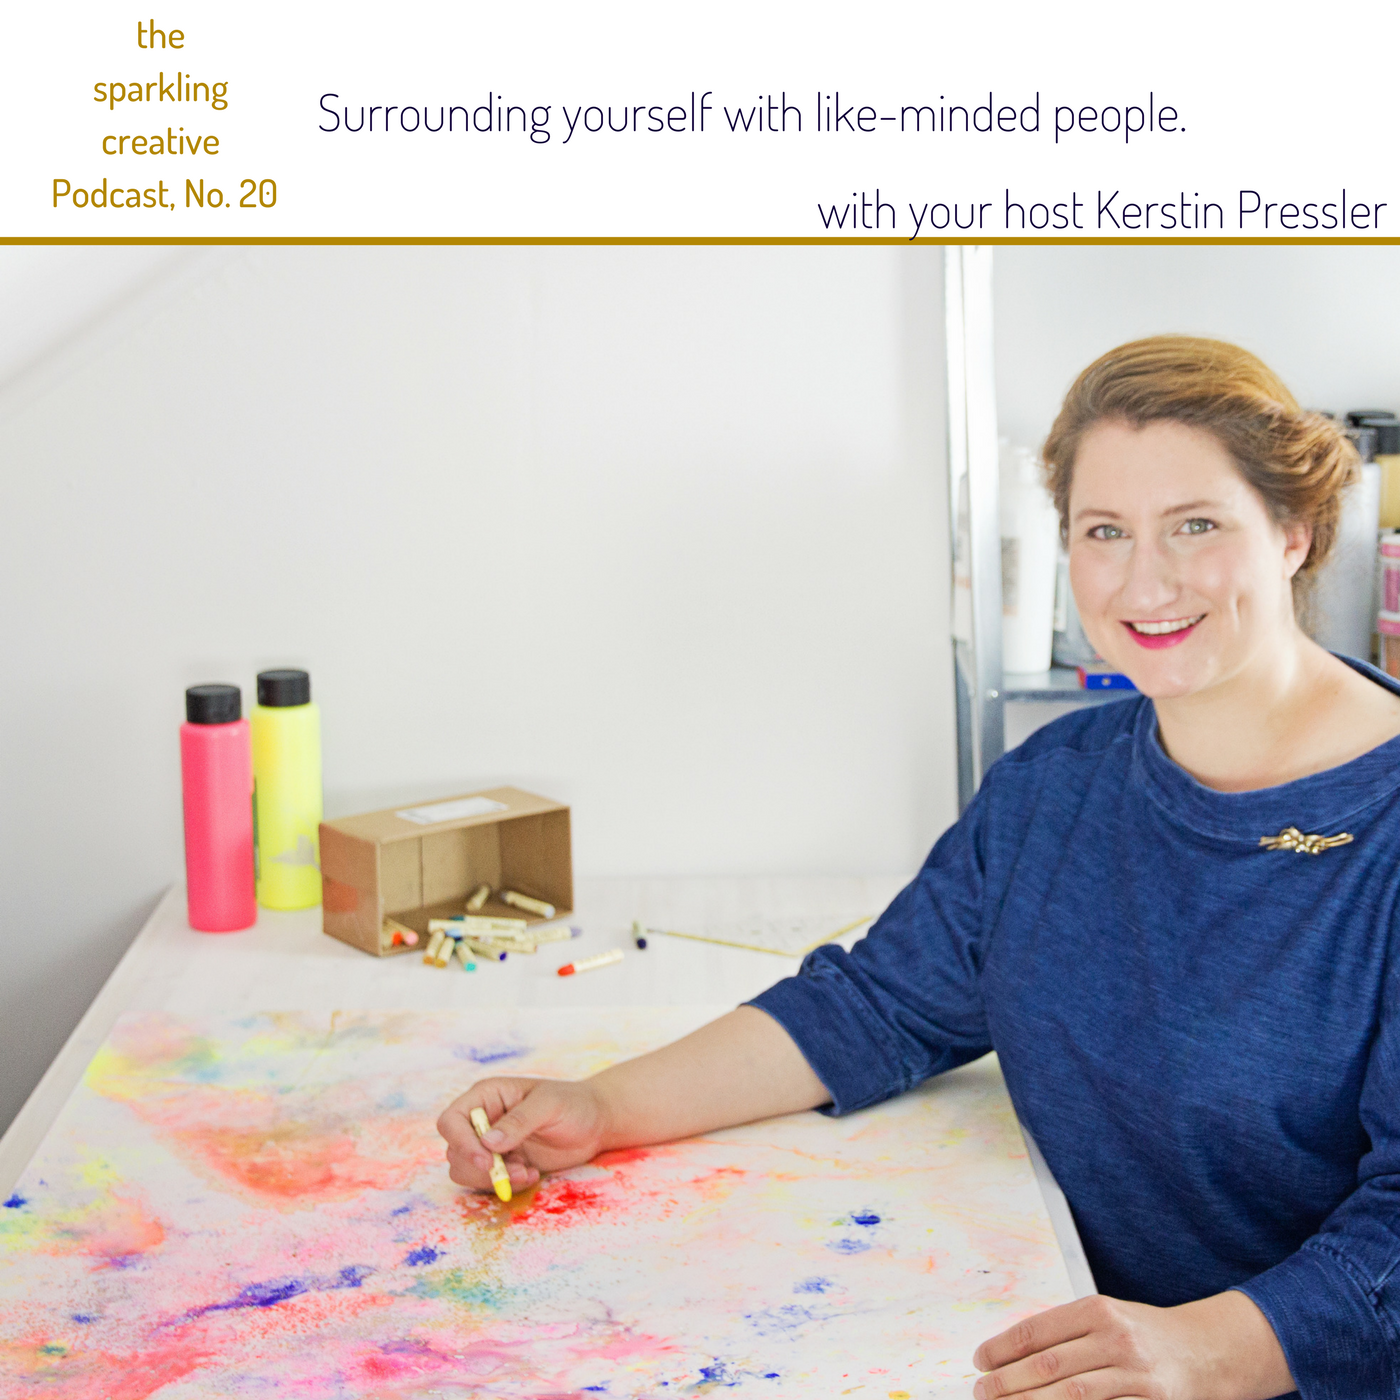 The sparkling creative Podcast Episode No. 20. Surrounding yourself with like minded people.